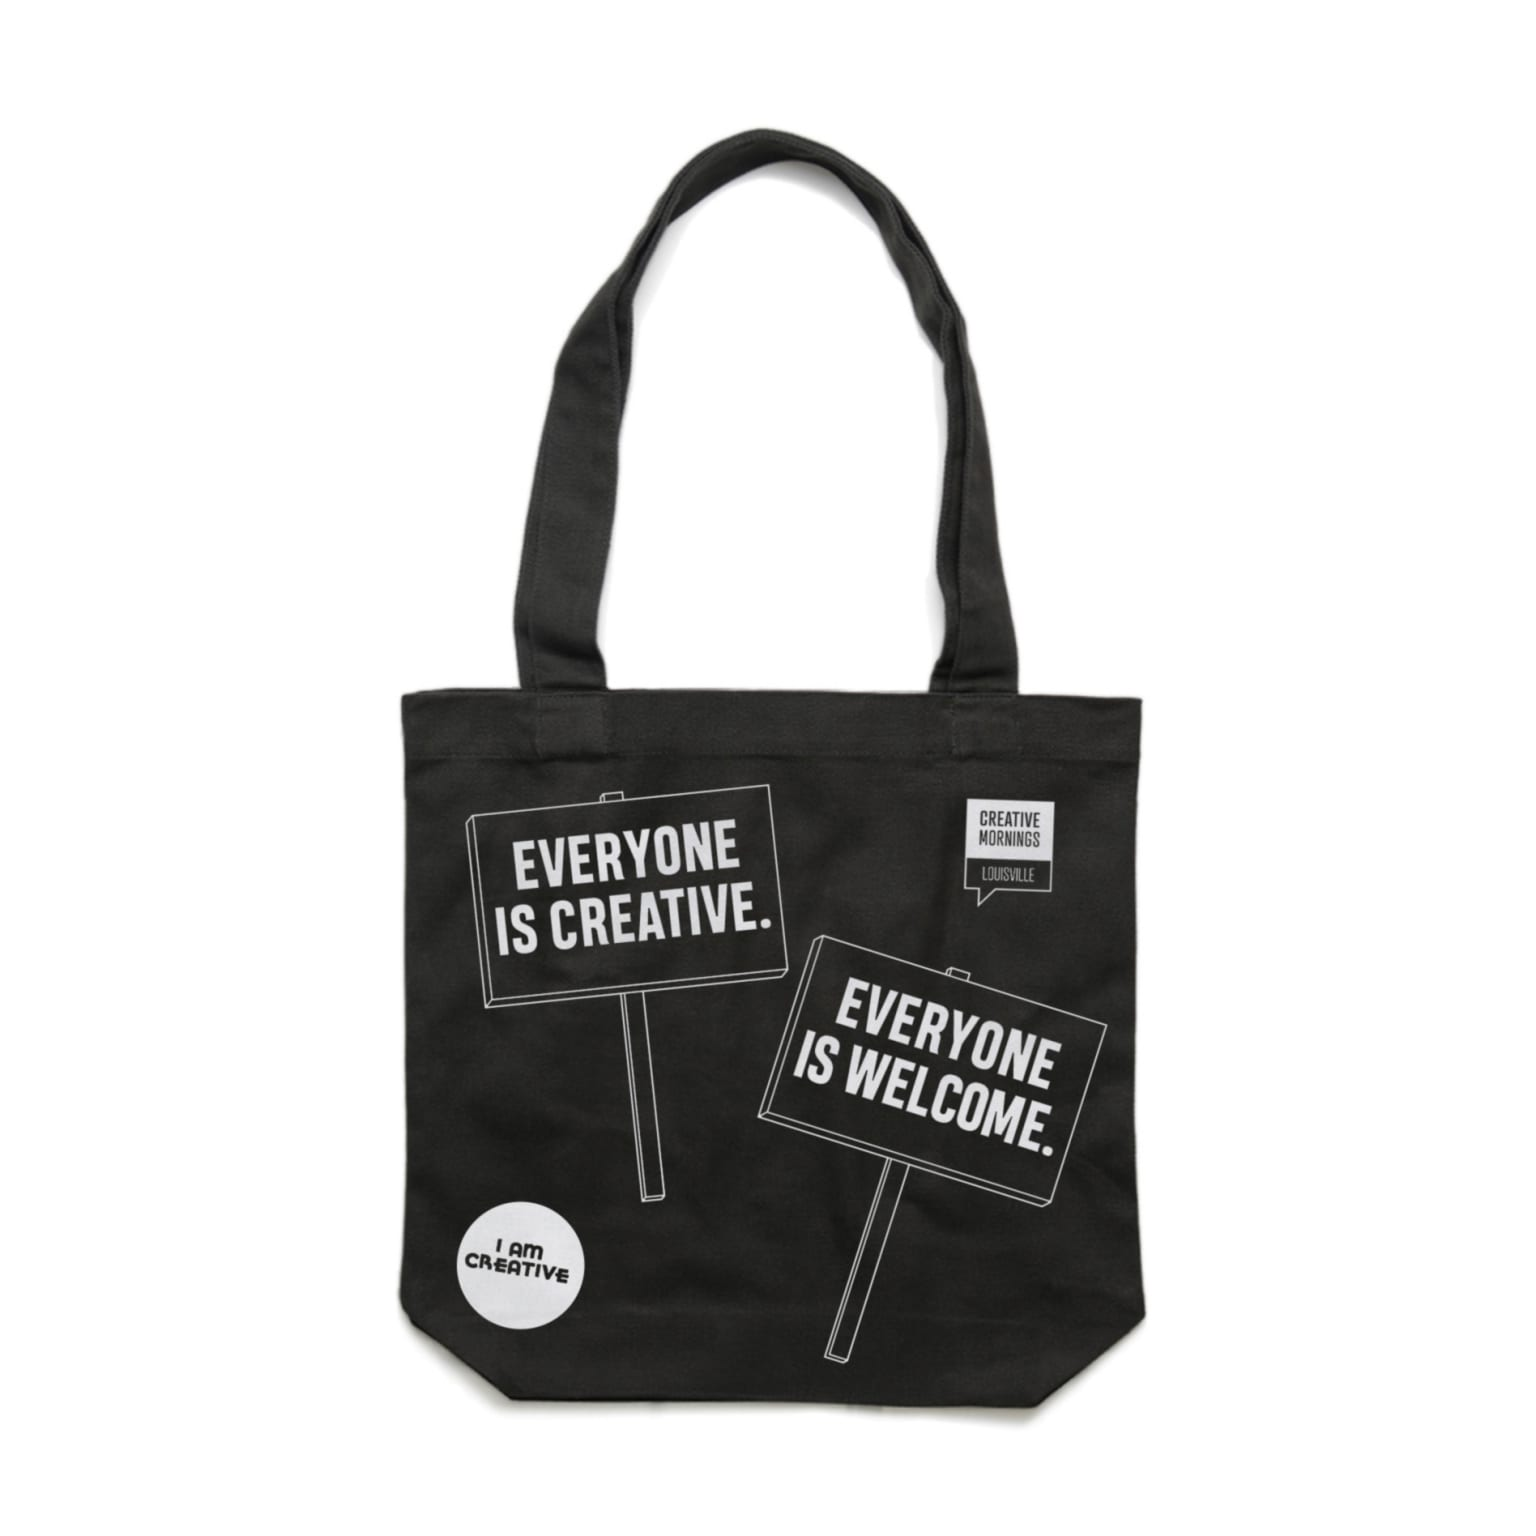 Creative Mornings Welcome Tote